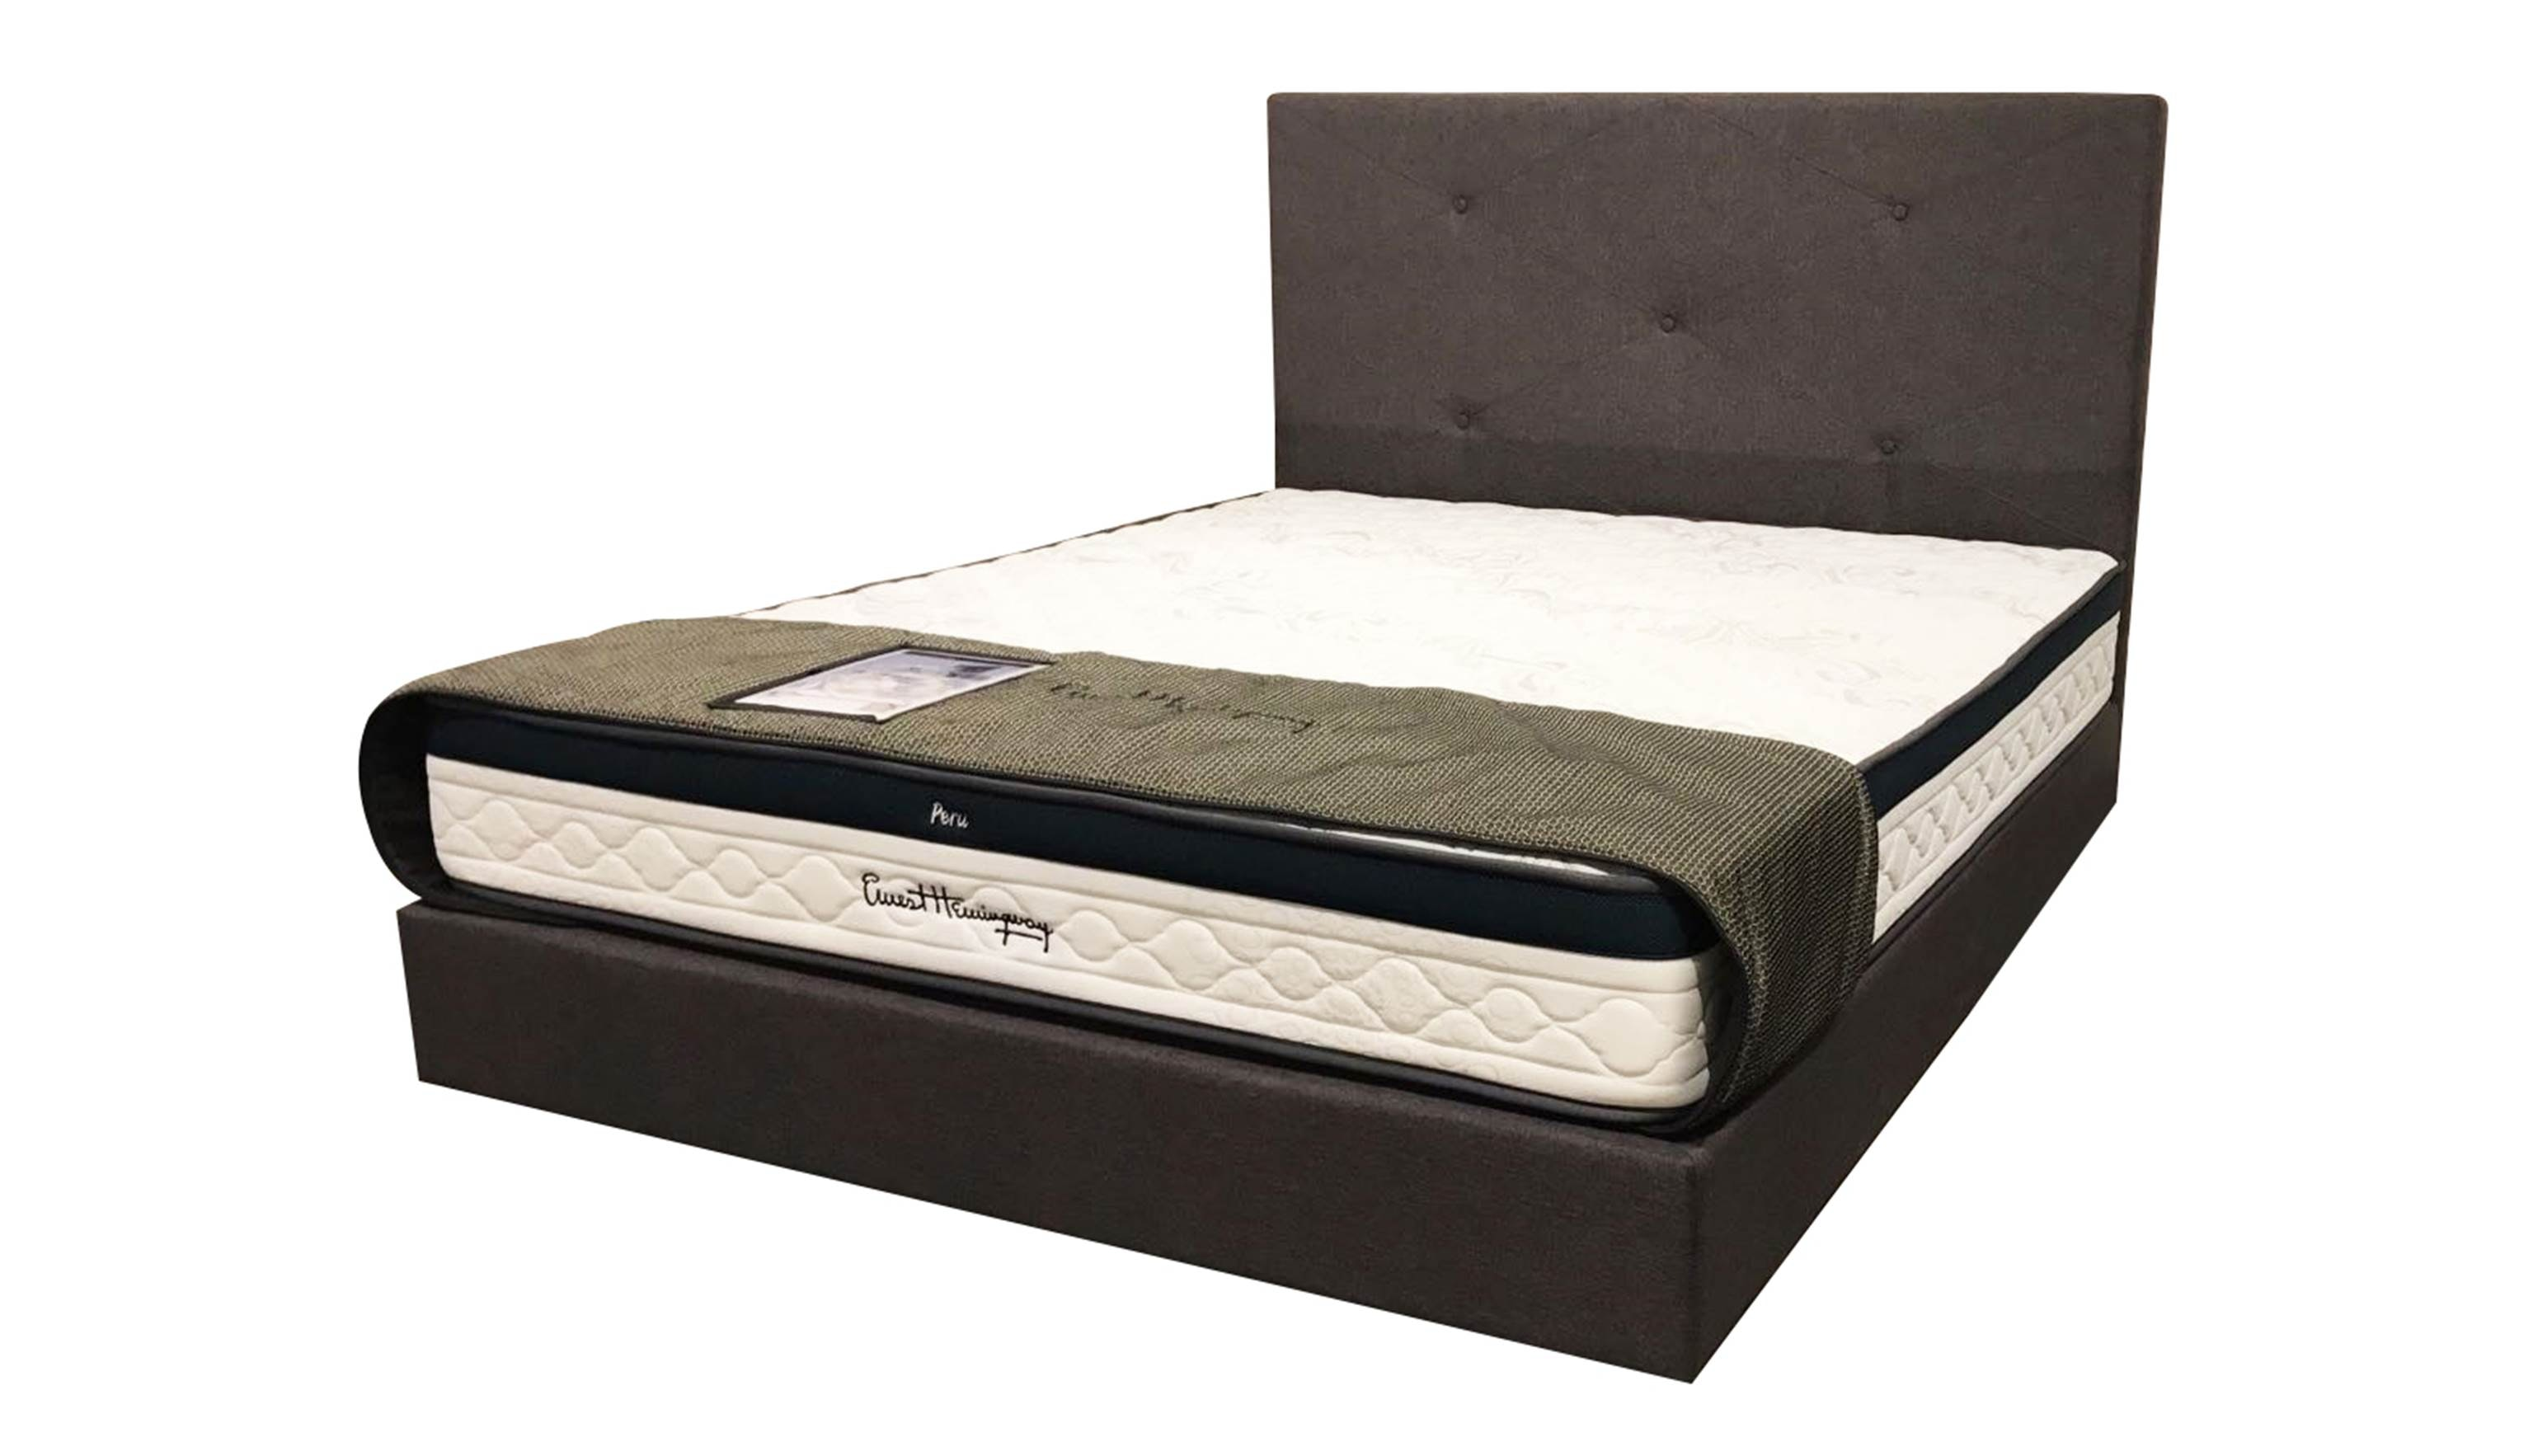 USA-Brand-Queen-Size-Mattress-​Hastings-Fabric-Queen-Size-Bedframe